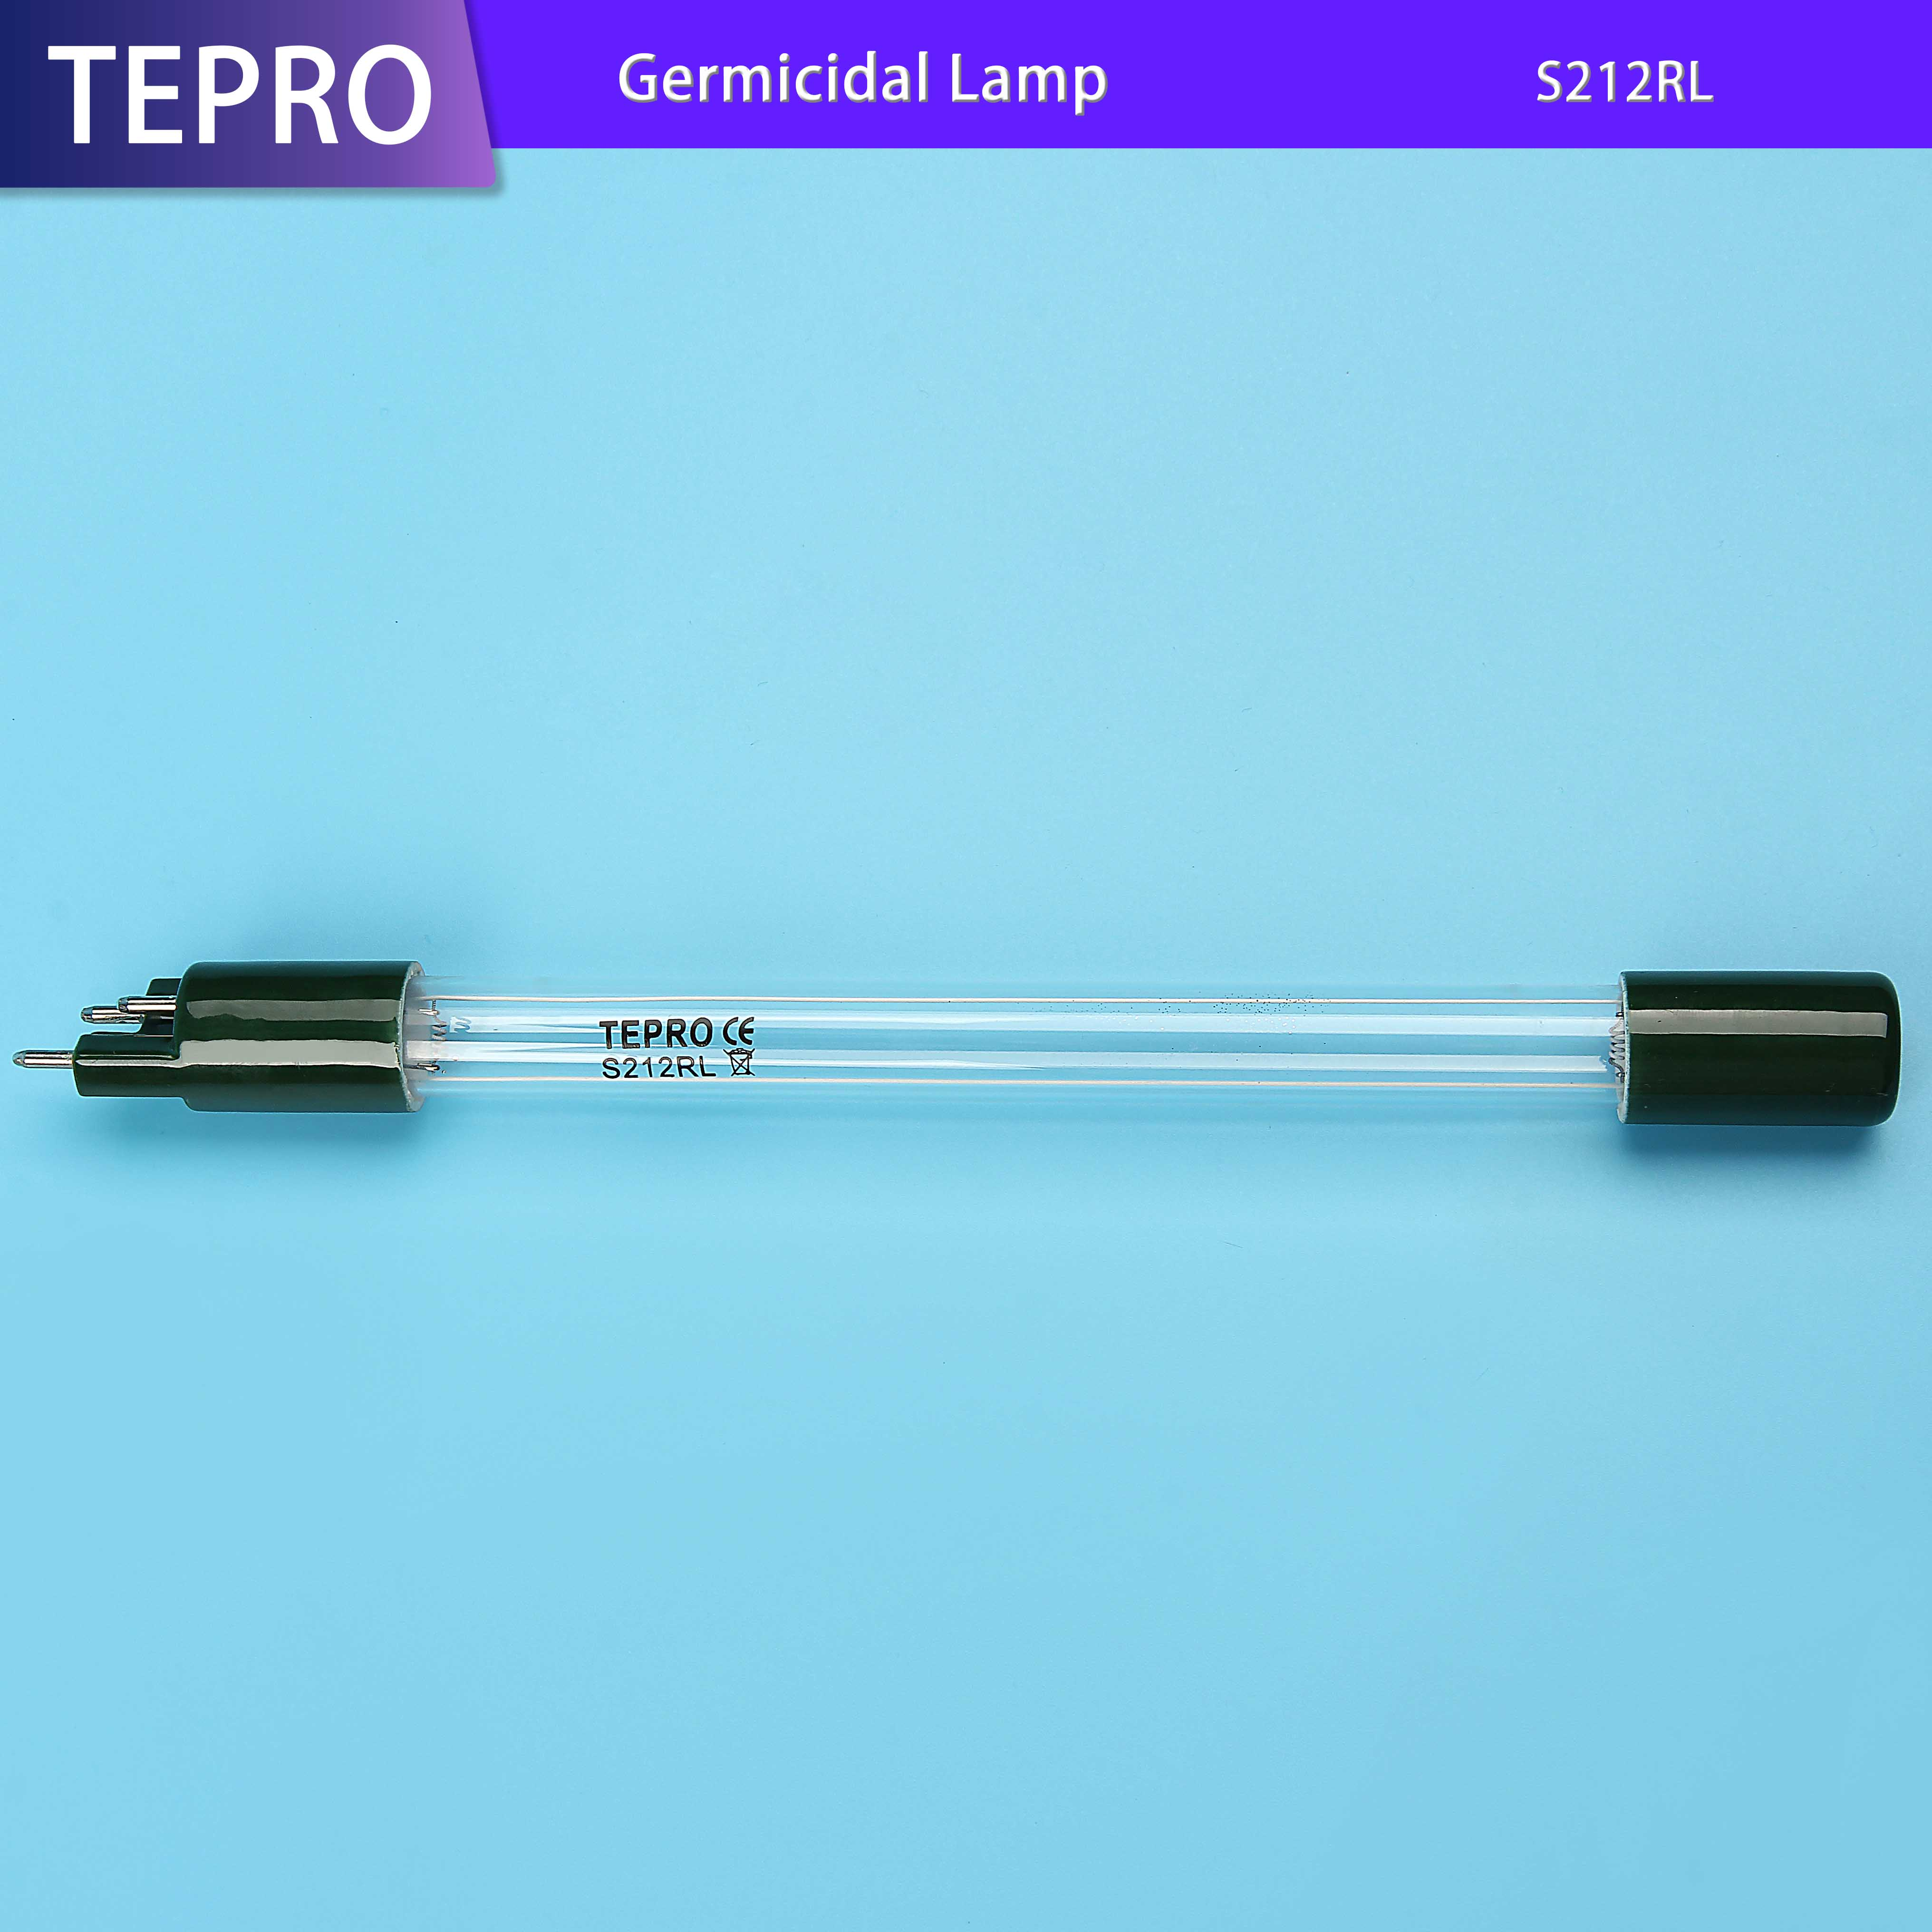 Tepro standard ultraviolet lamp design for aquarium-Uv Lamps,Water Treatment Equipment,Uv Sterilizer